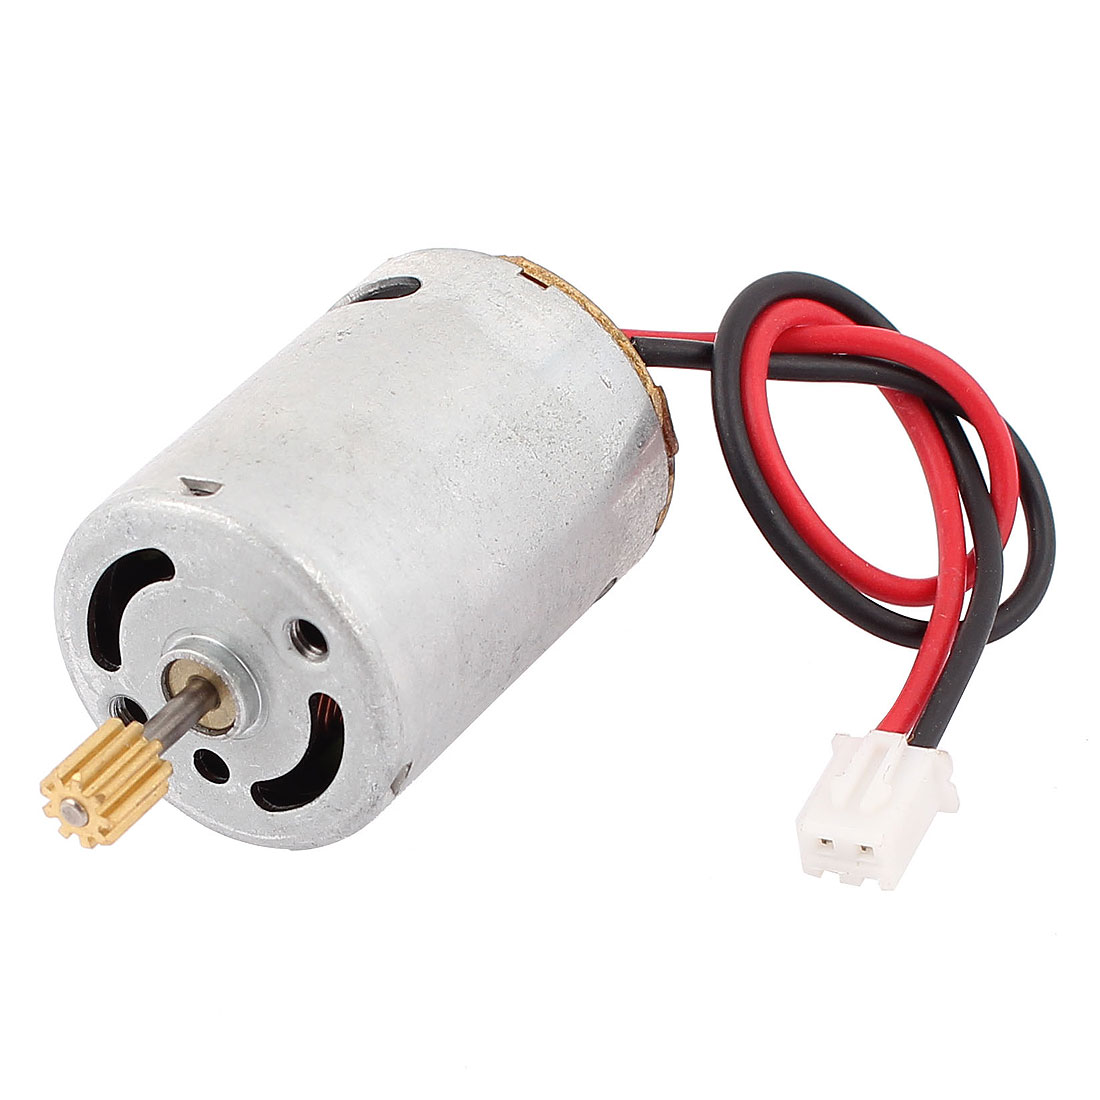 DC7.4V/ 31800 RPM 2mm Shaft Dia Electric Mini Motor for RC plane